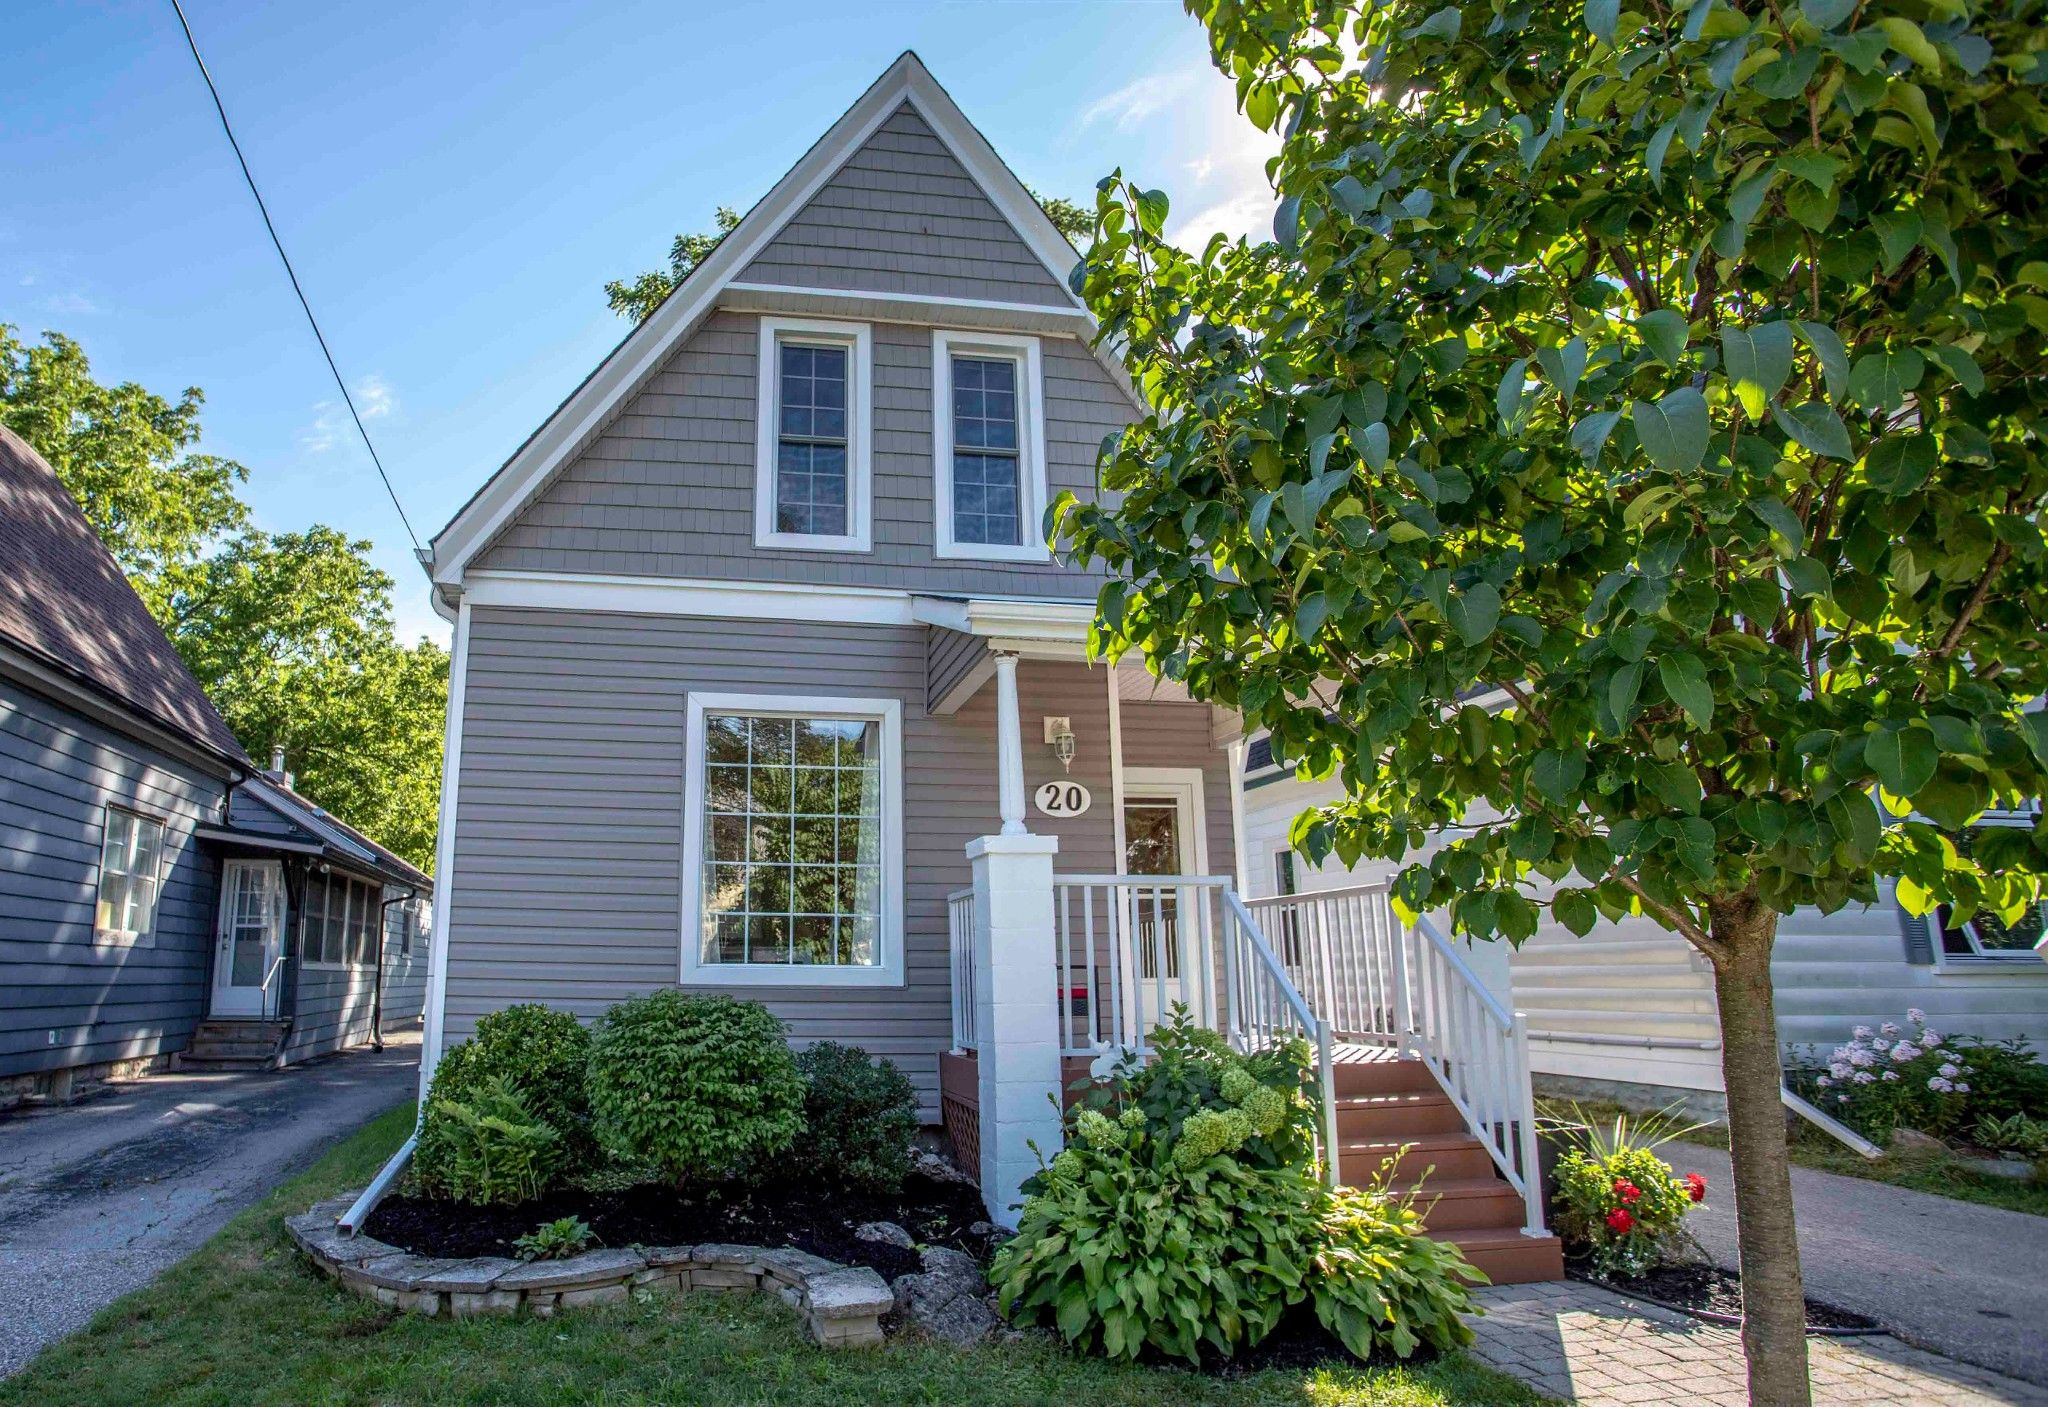 Main Photo: 20 THORNTON Avenue in London: Property for sale : MLS®# 40009840